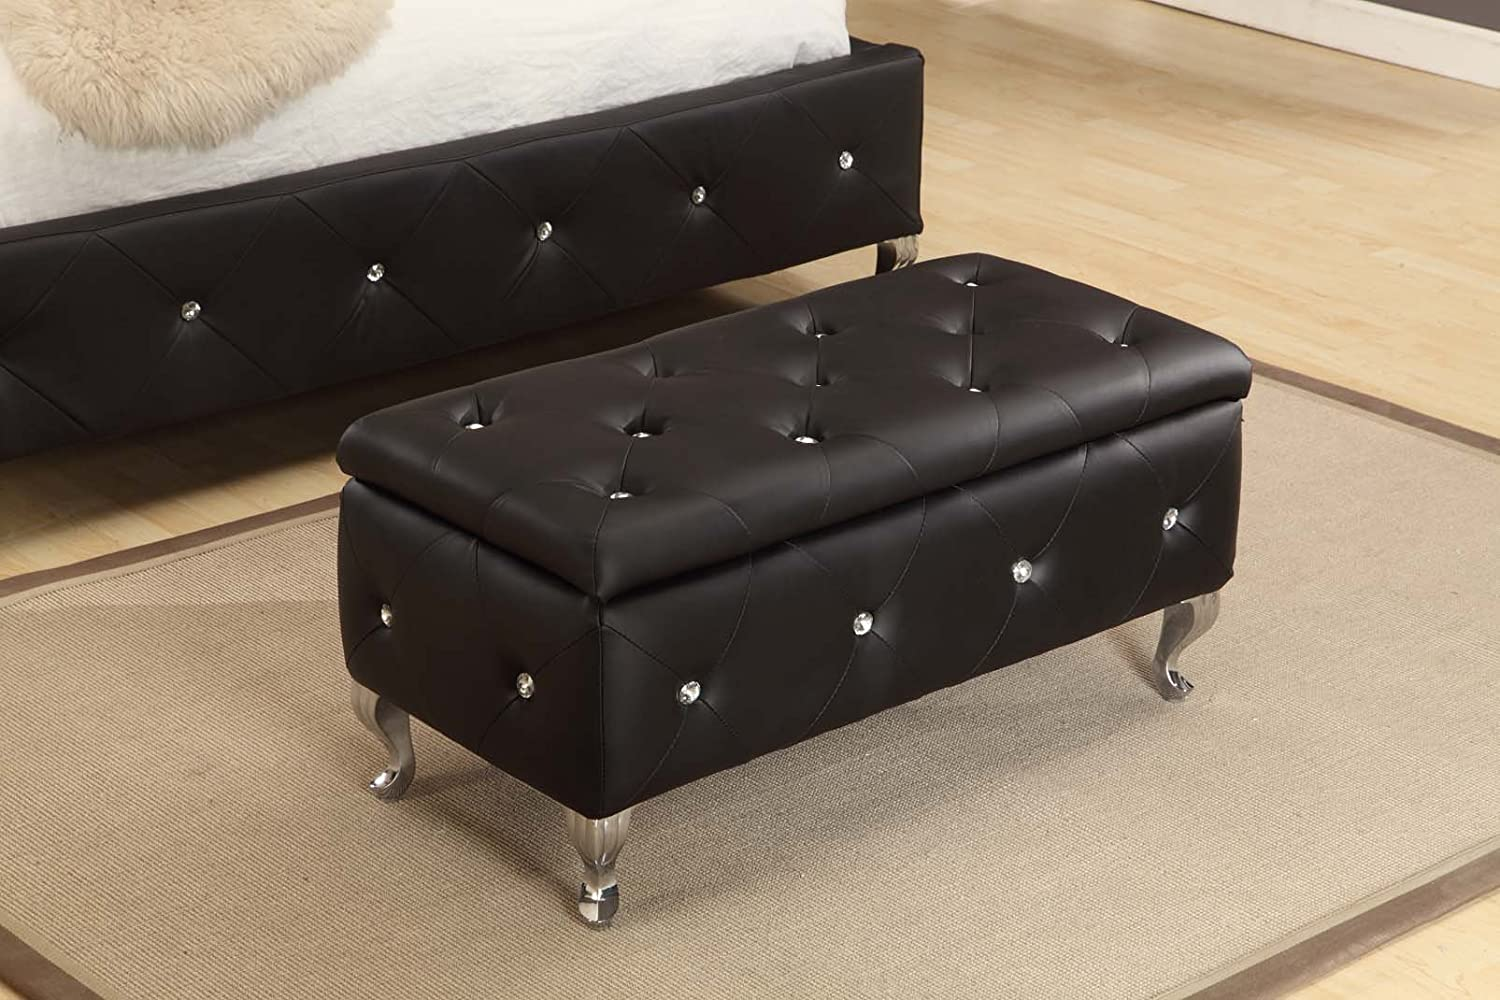 amazoncom kings brand furniture tufted design upholstered storage bench ottoman black kitchen u0026 dining